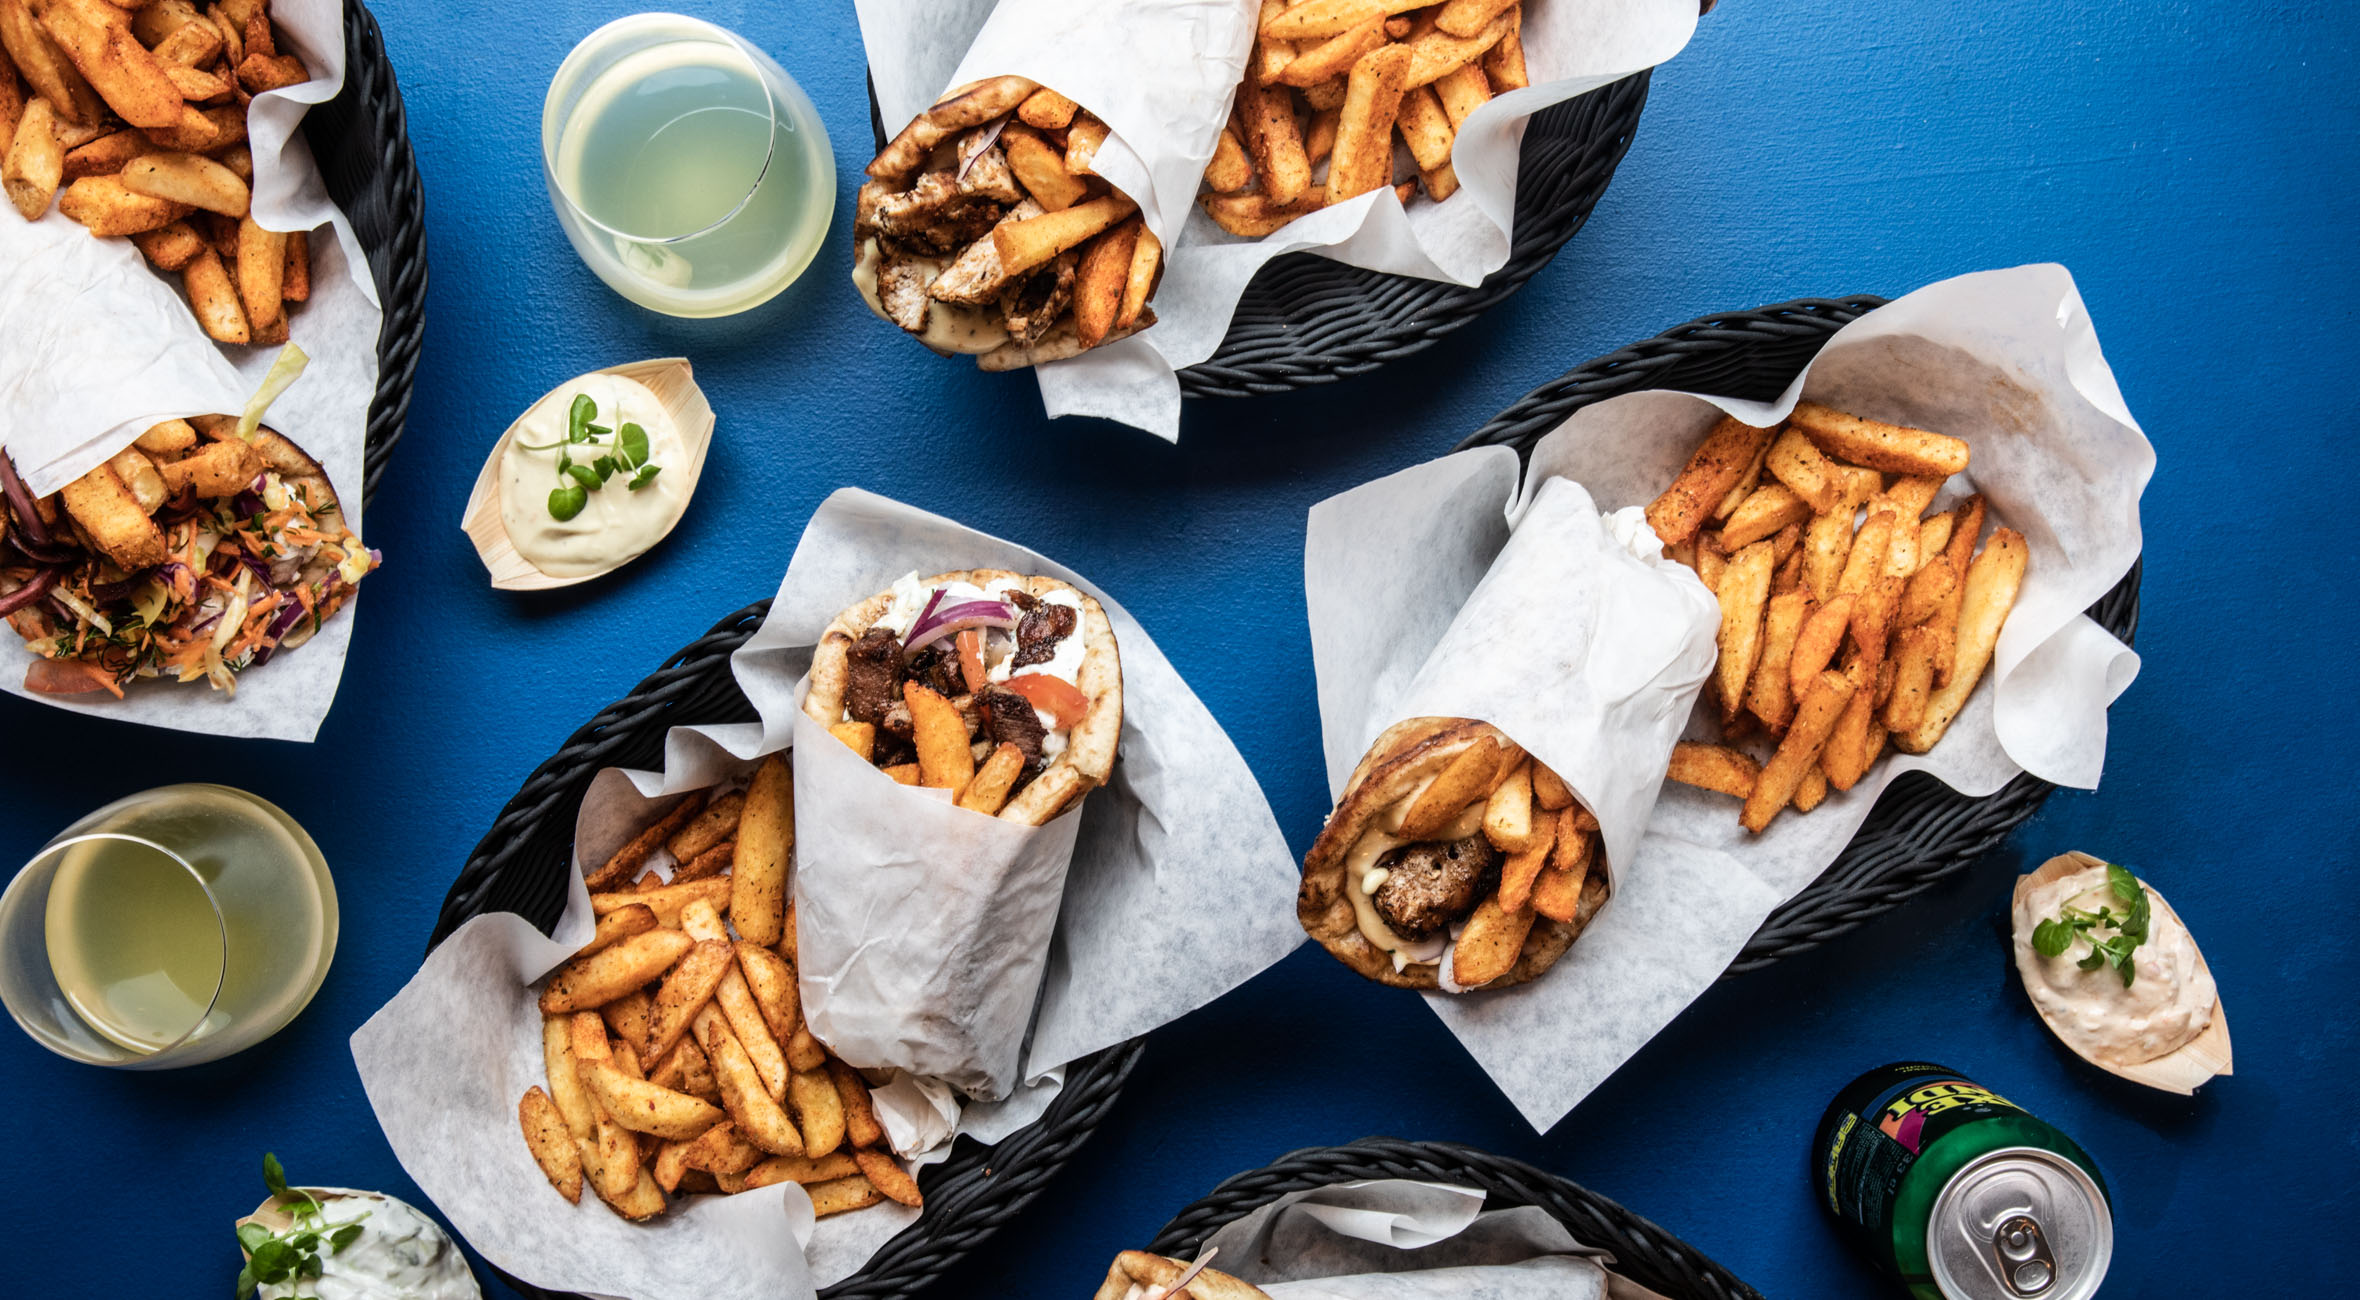 2 pita wraps med fritter, dip & soda hos Souvlaki Stories – Spisebar & take away i Indre By byder på topanmeldt græsk street food